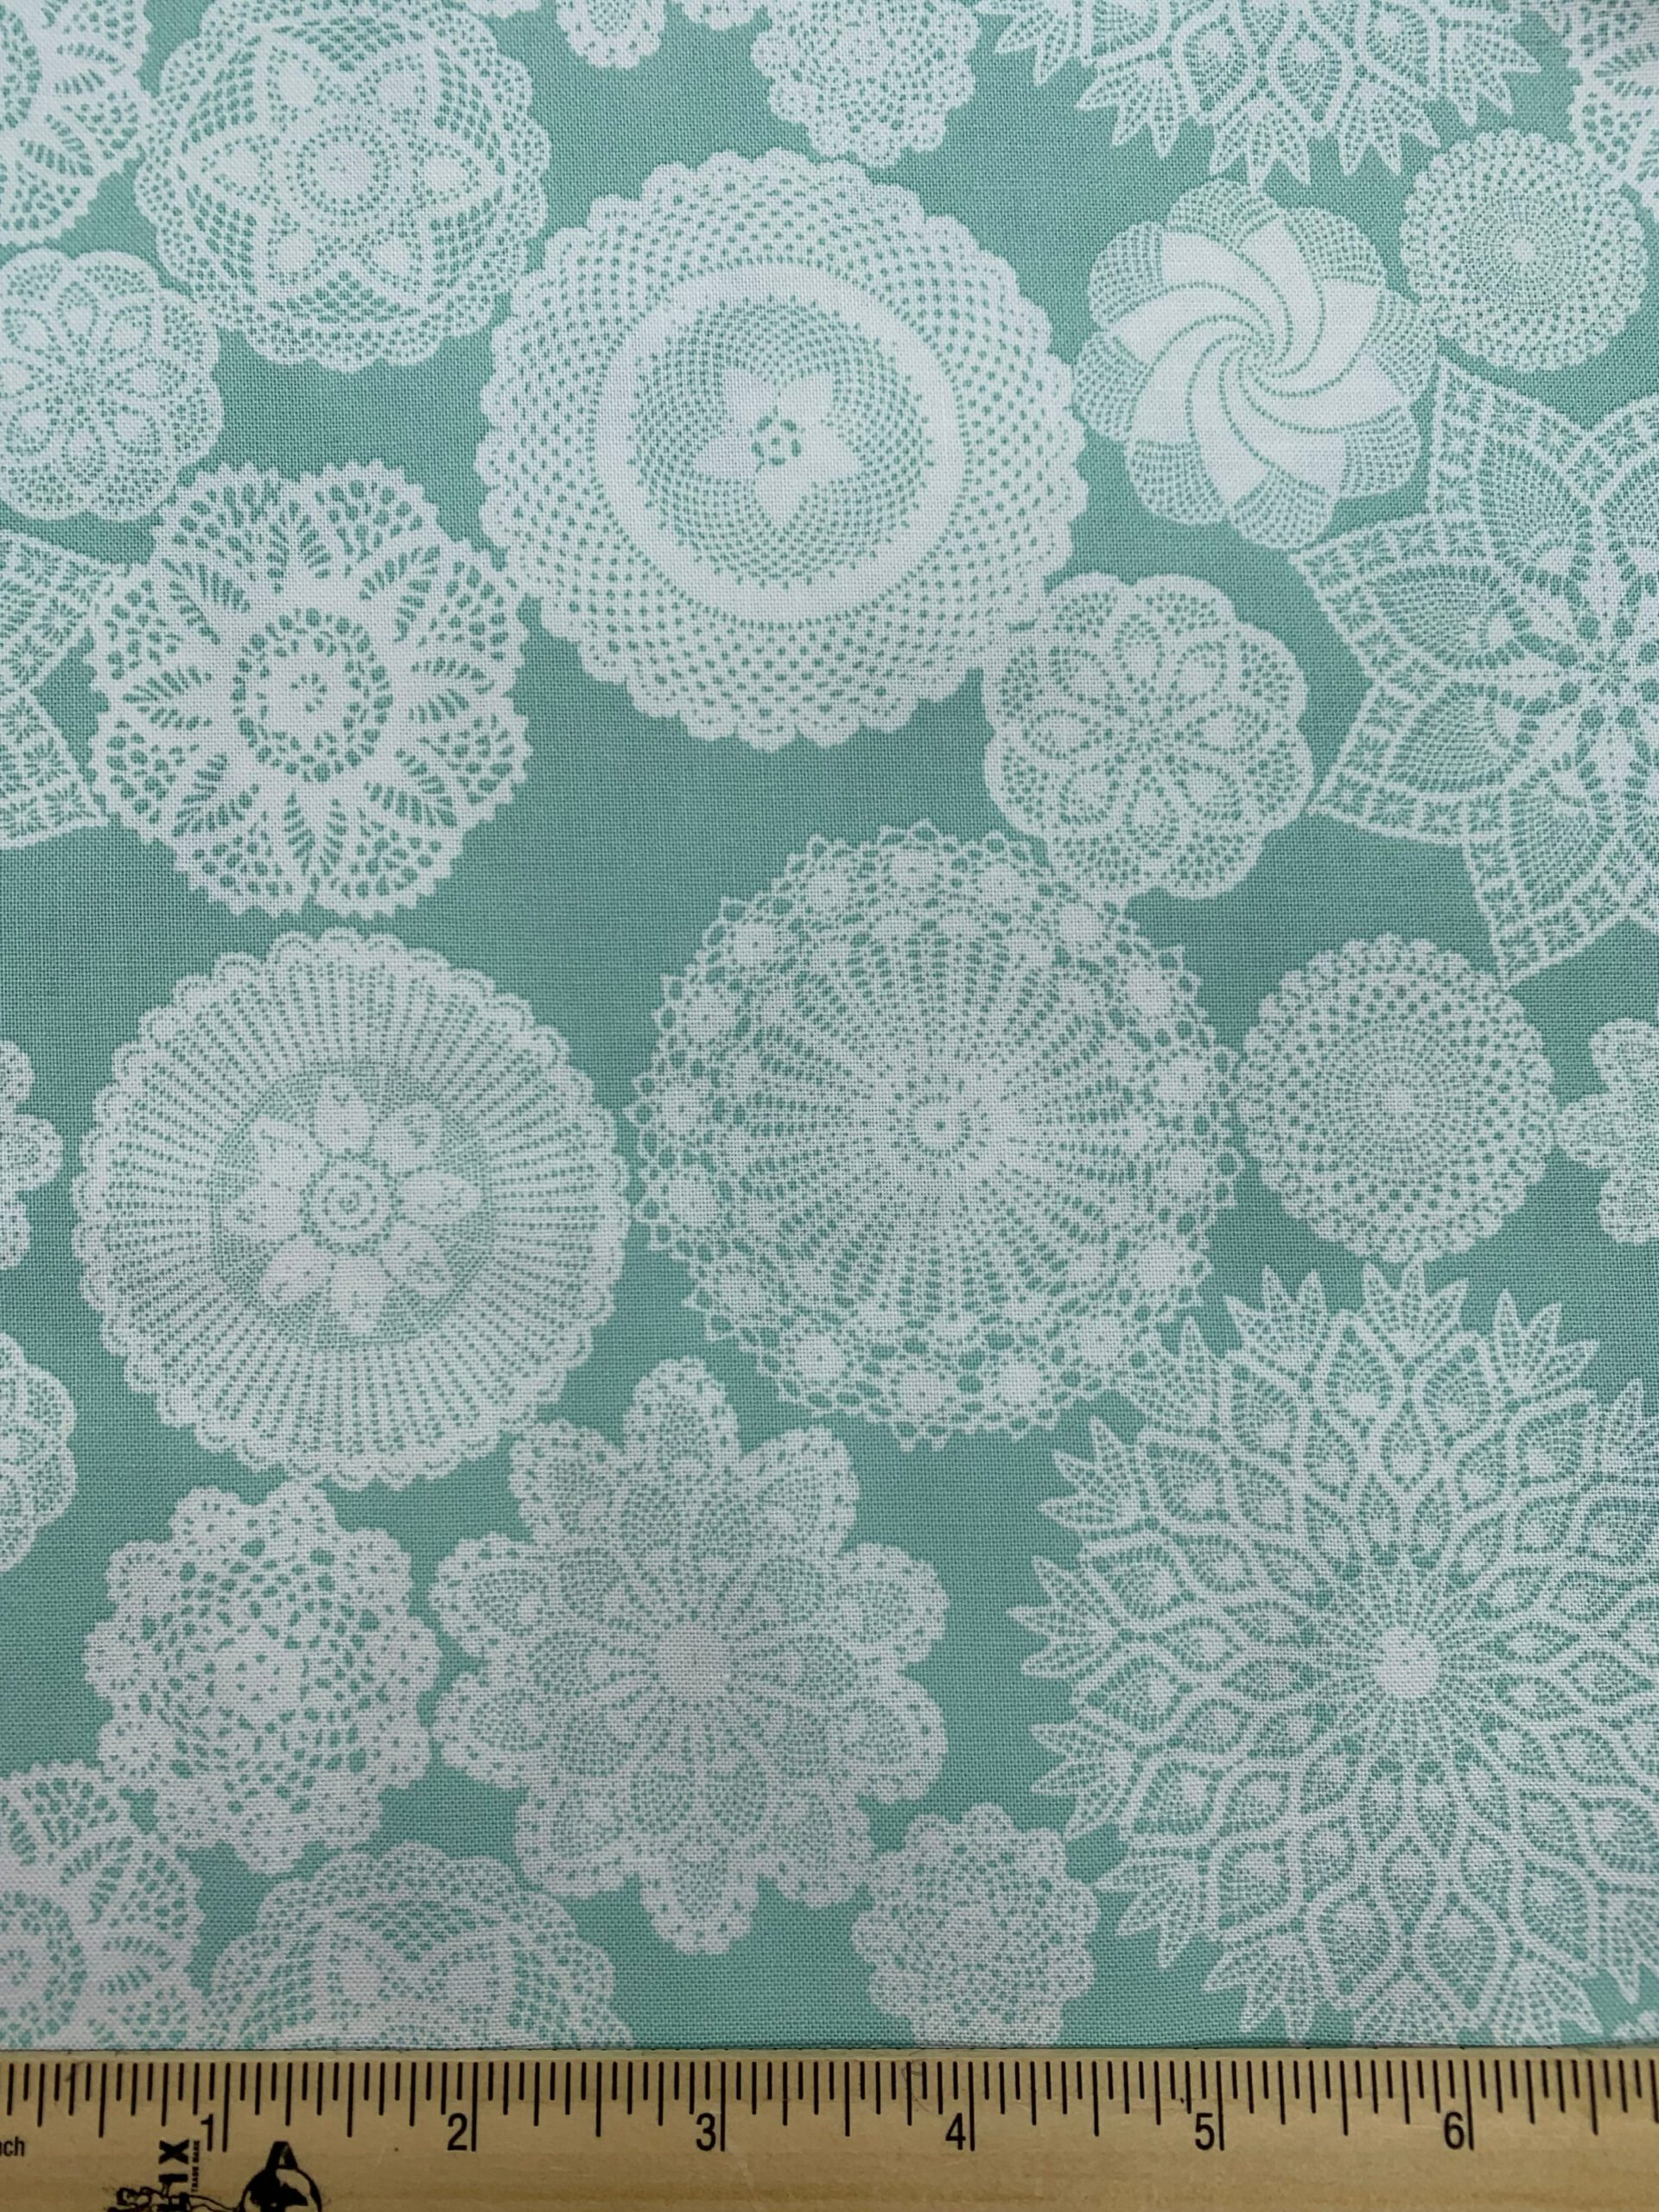 White doilies on an aqua background quilting fabric